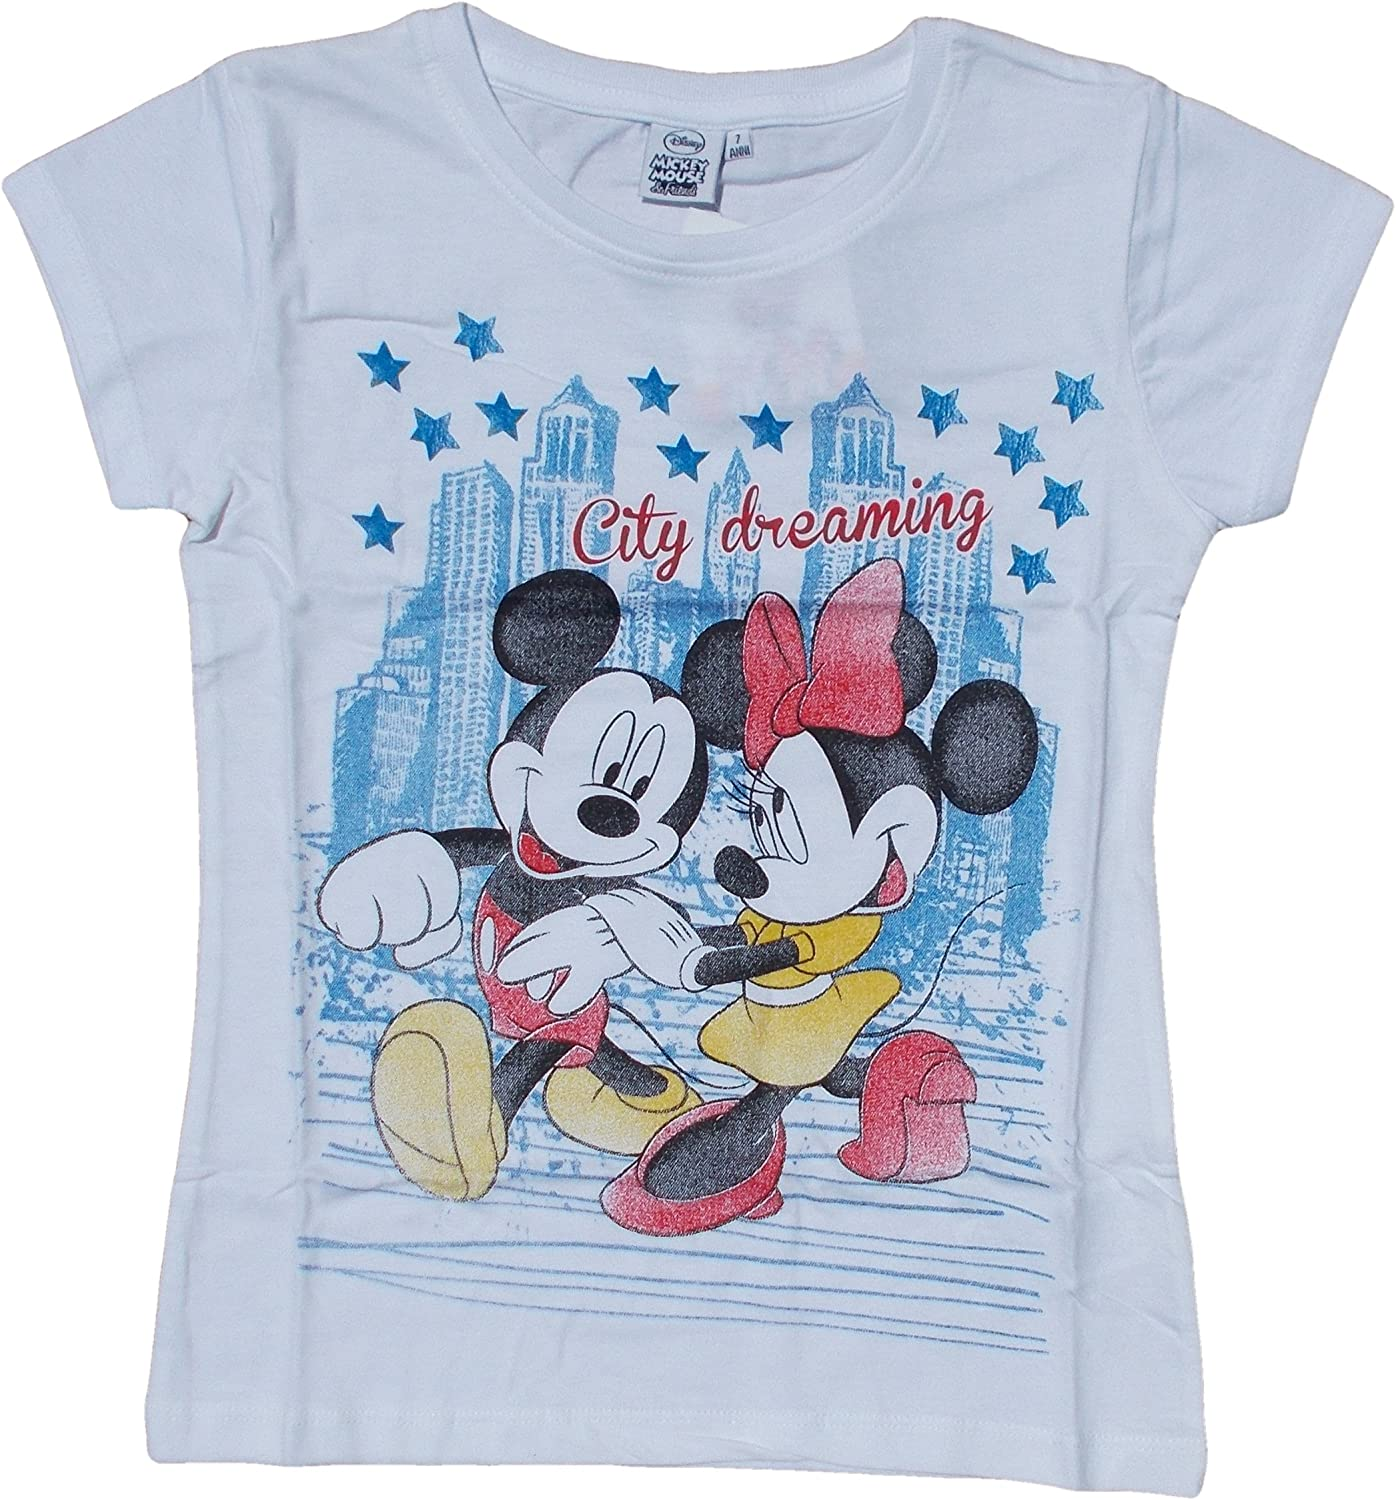 3942CITY T-SHIRT Maglietta MINNIE E TOPOLINO MICKEY MOUSE DISNEY TAGLIE 3//7 ANNI